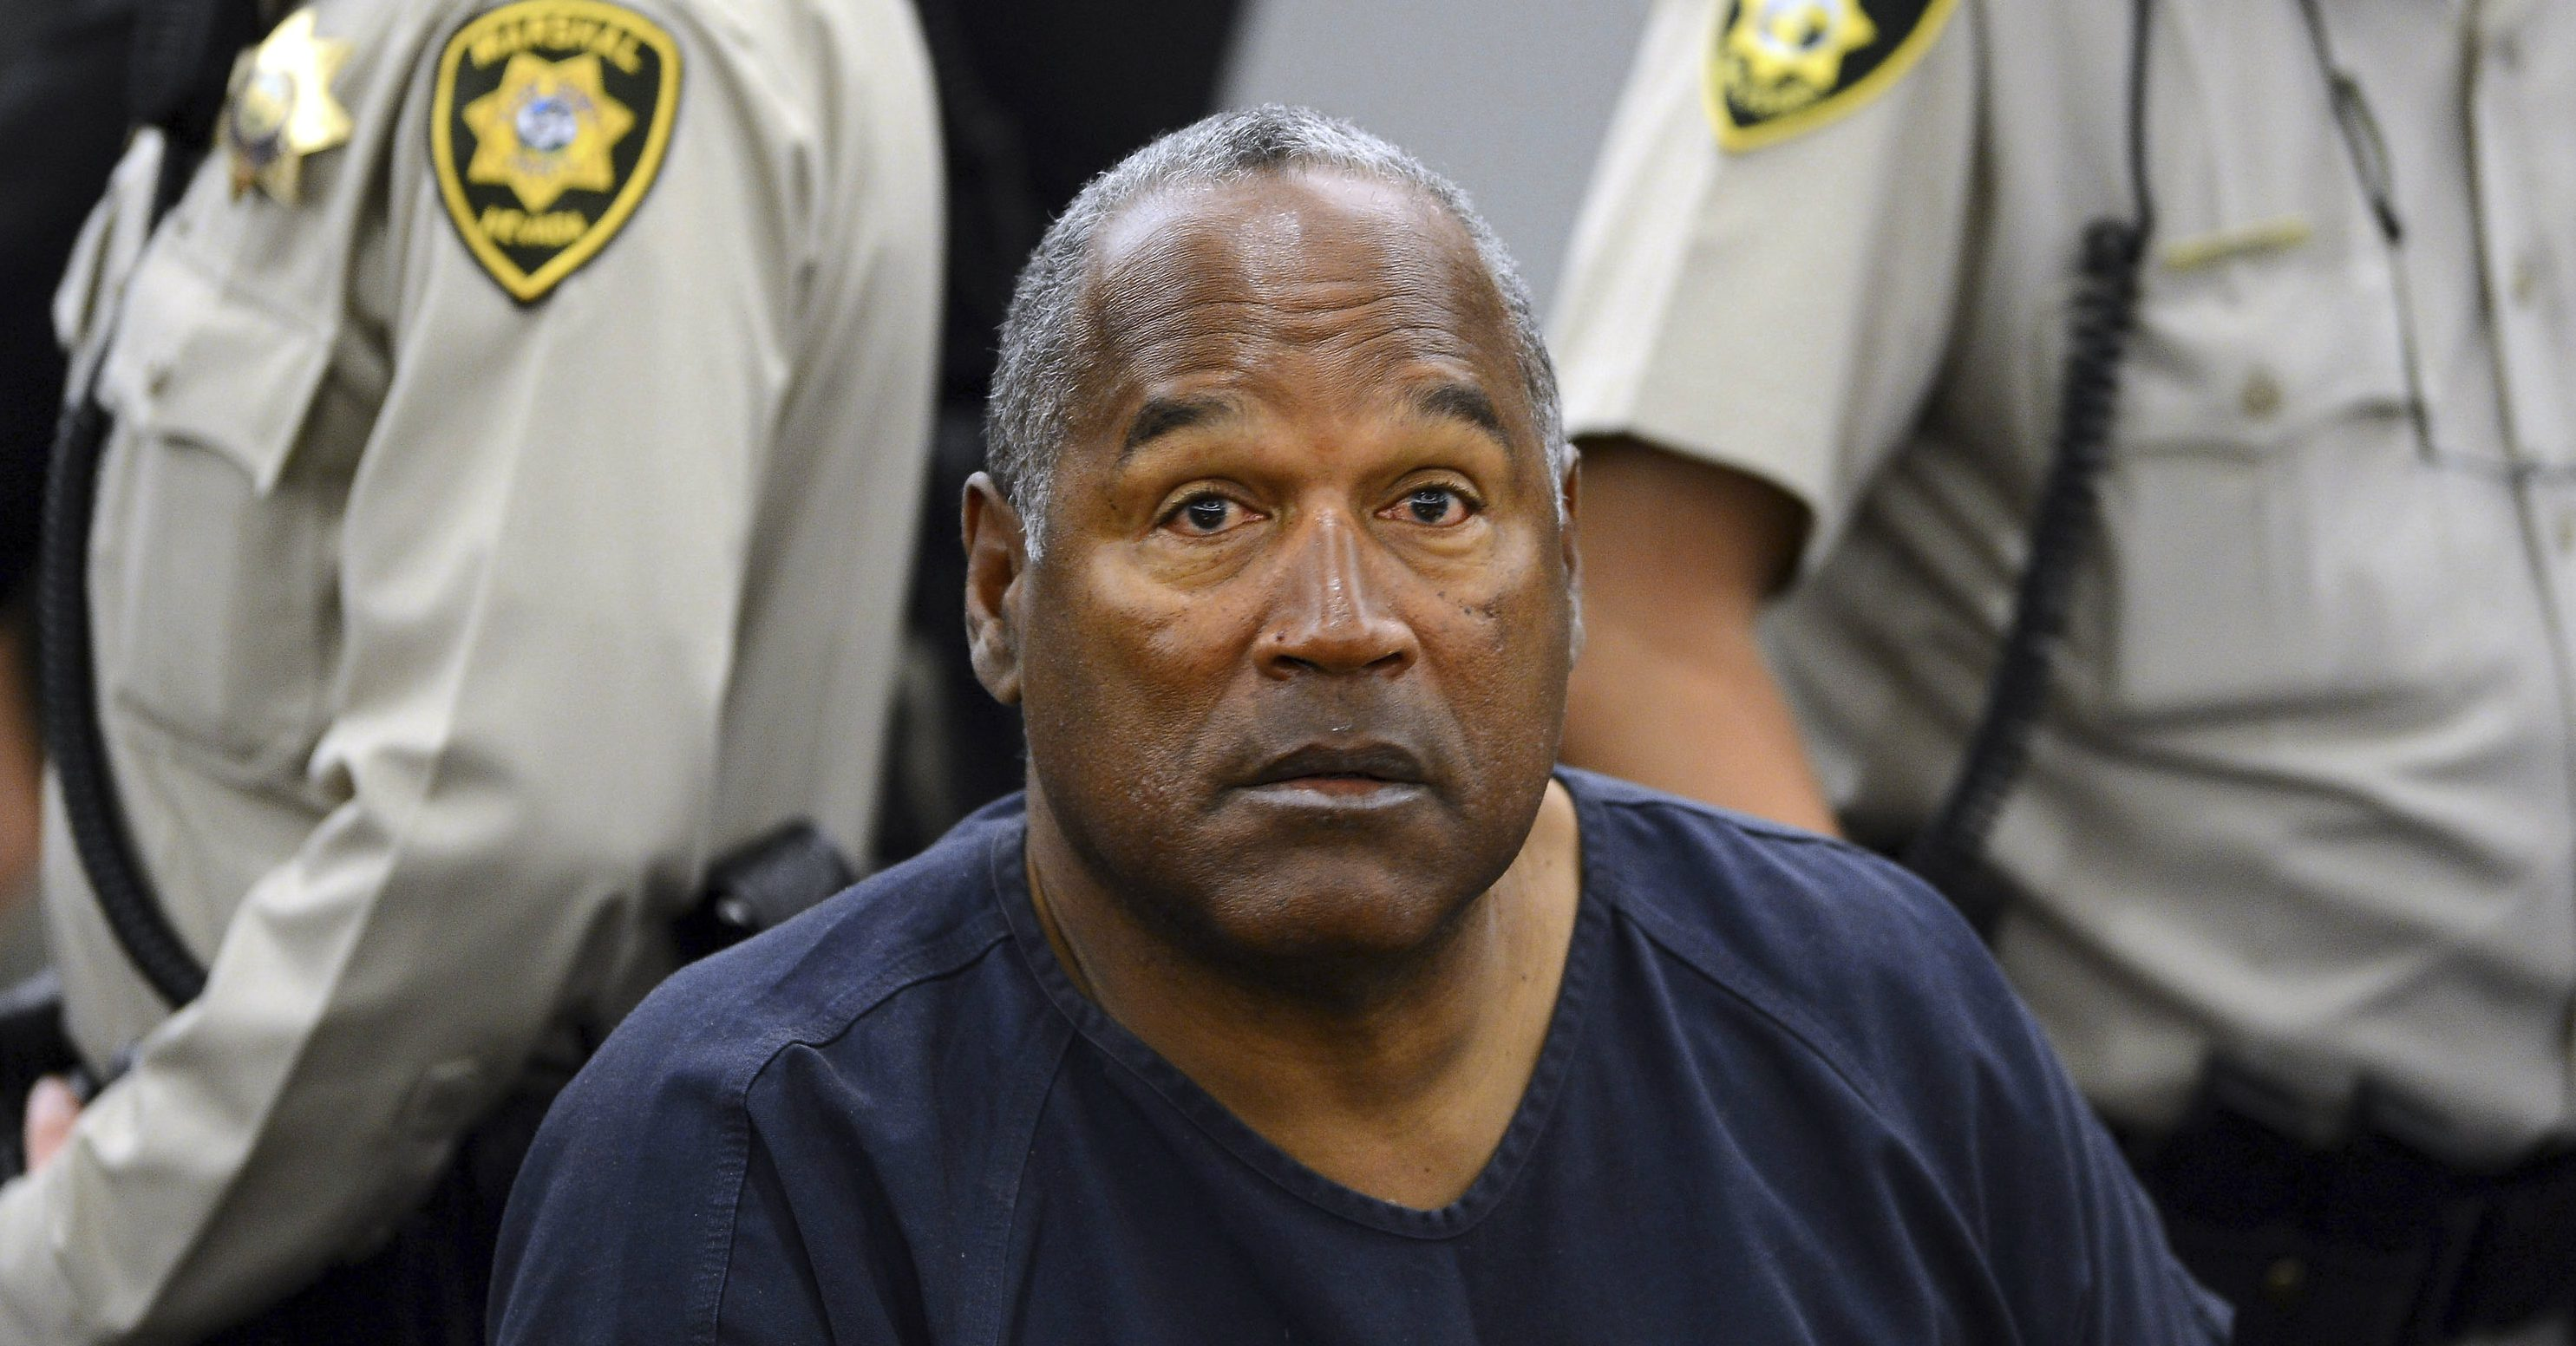 OJ Simpson at trial